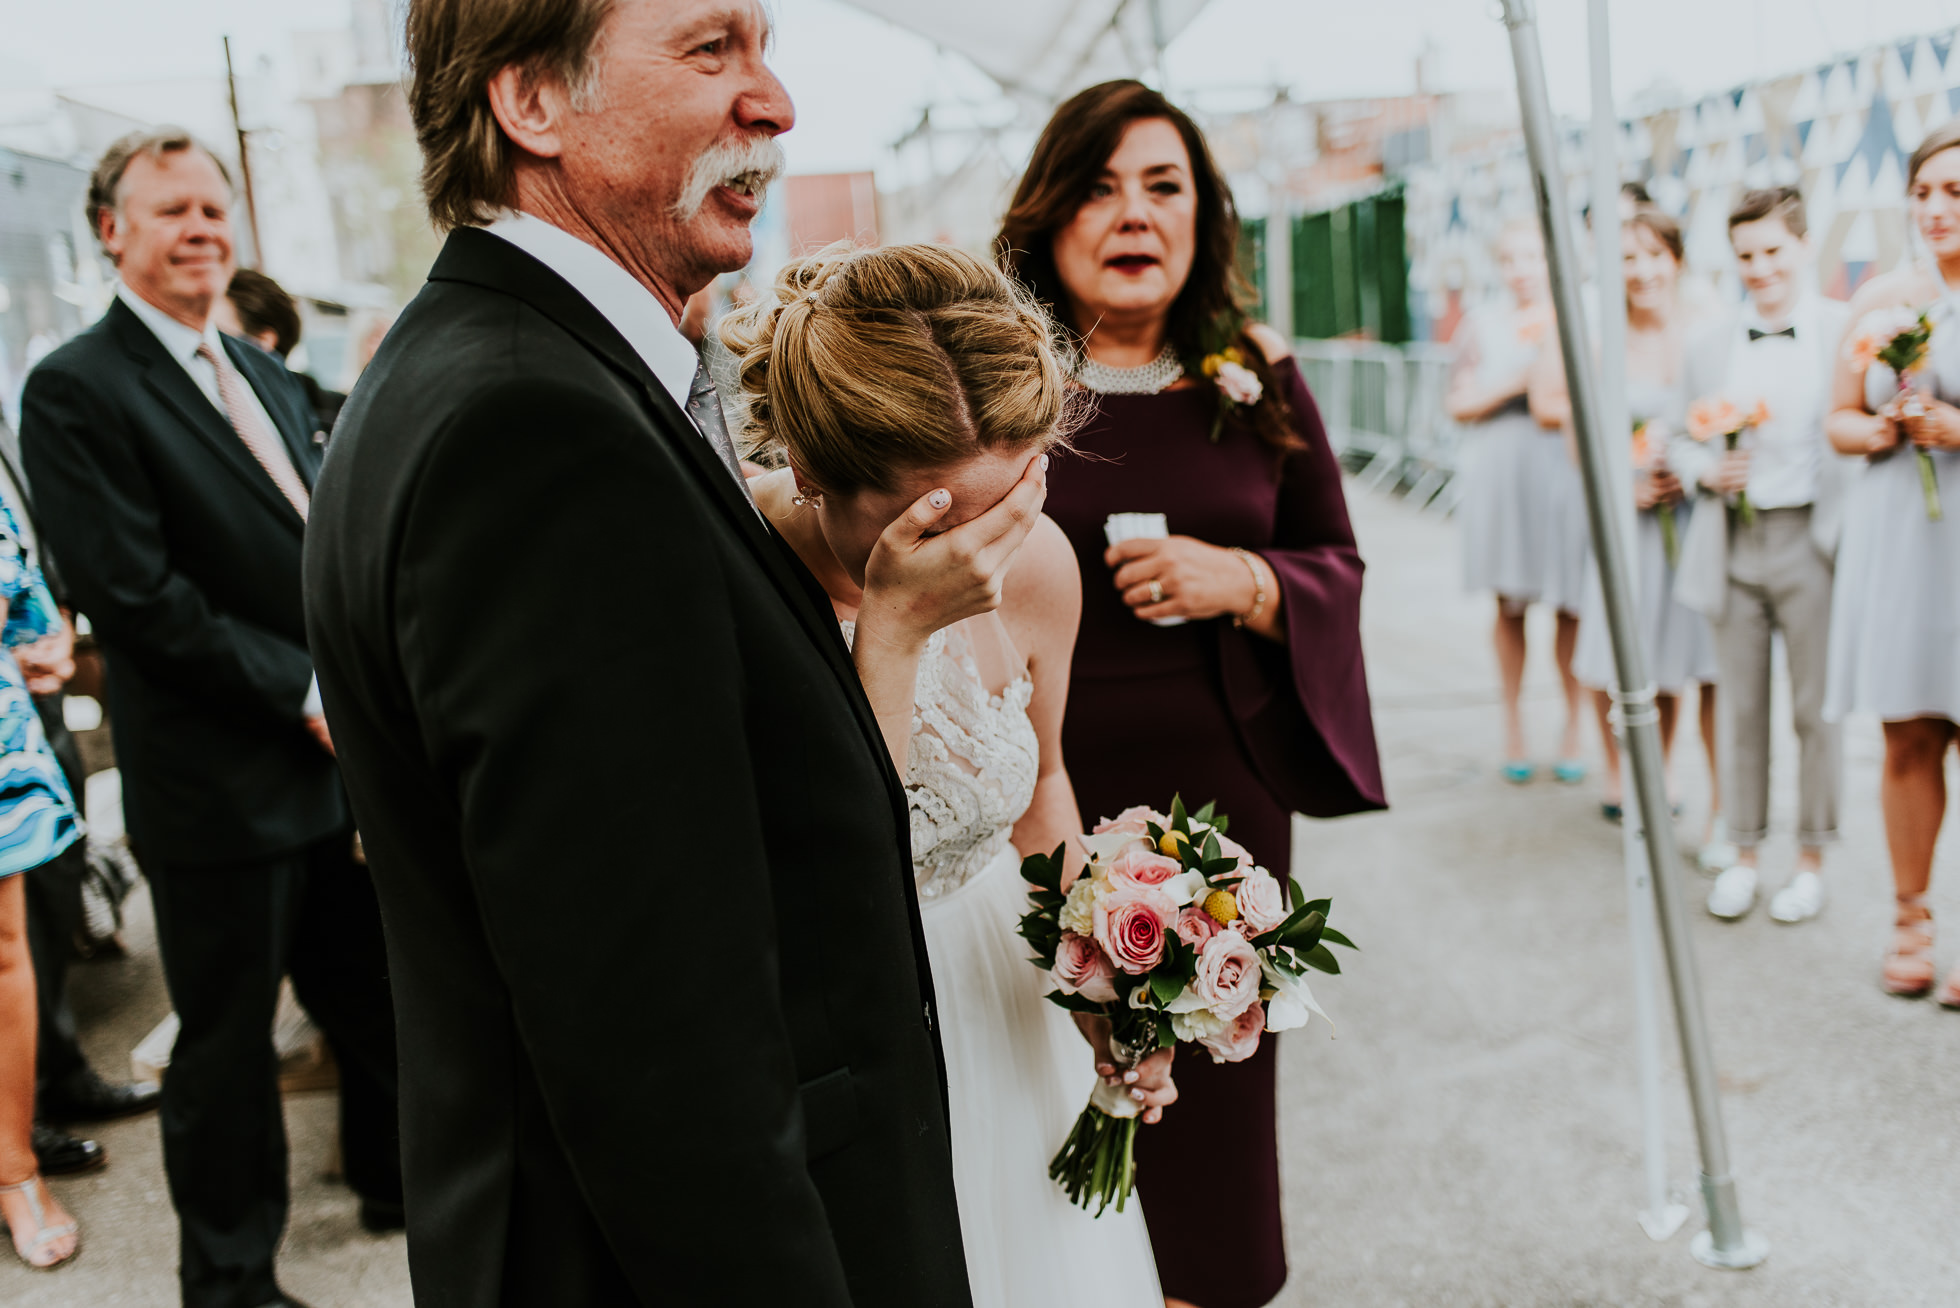 emotional wedding photographed by Traverse The Tides